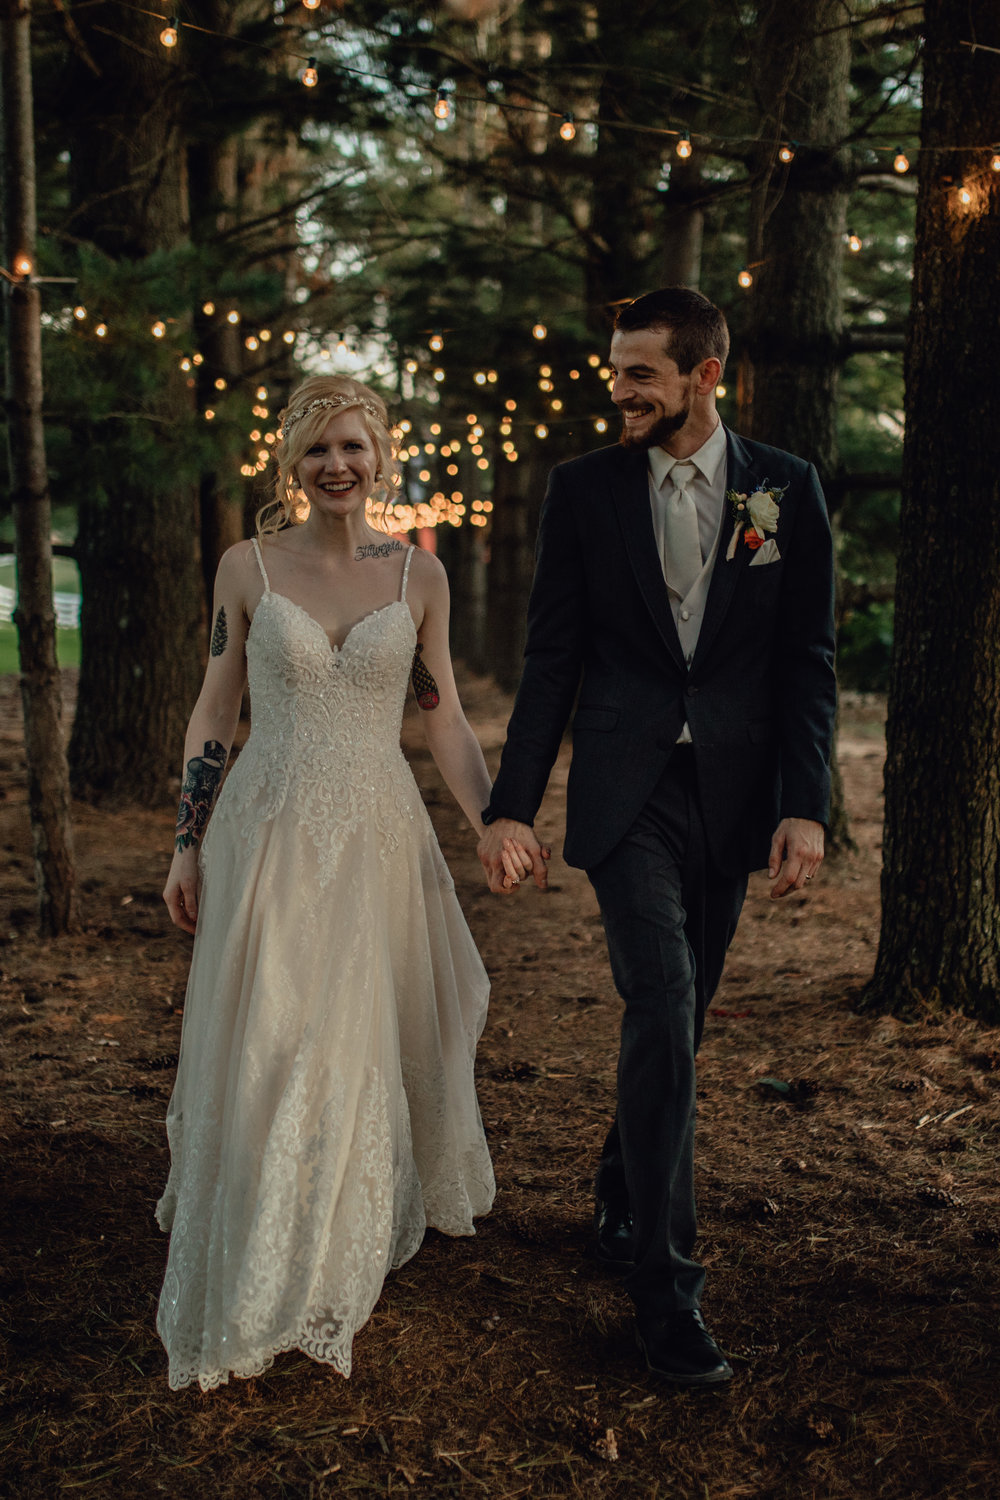 bride and groom portrait under string lights in forest at oak hill weddings path of pines